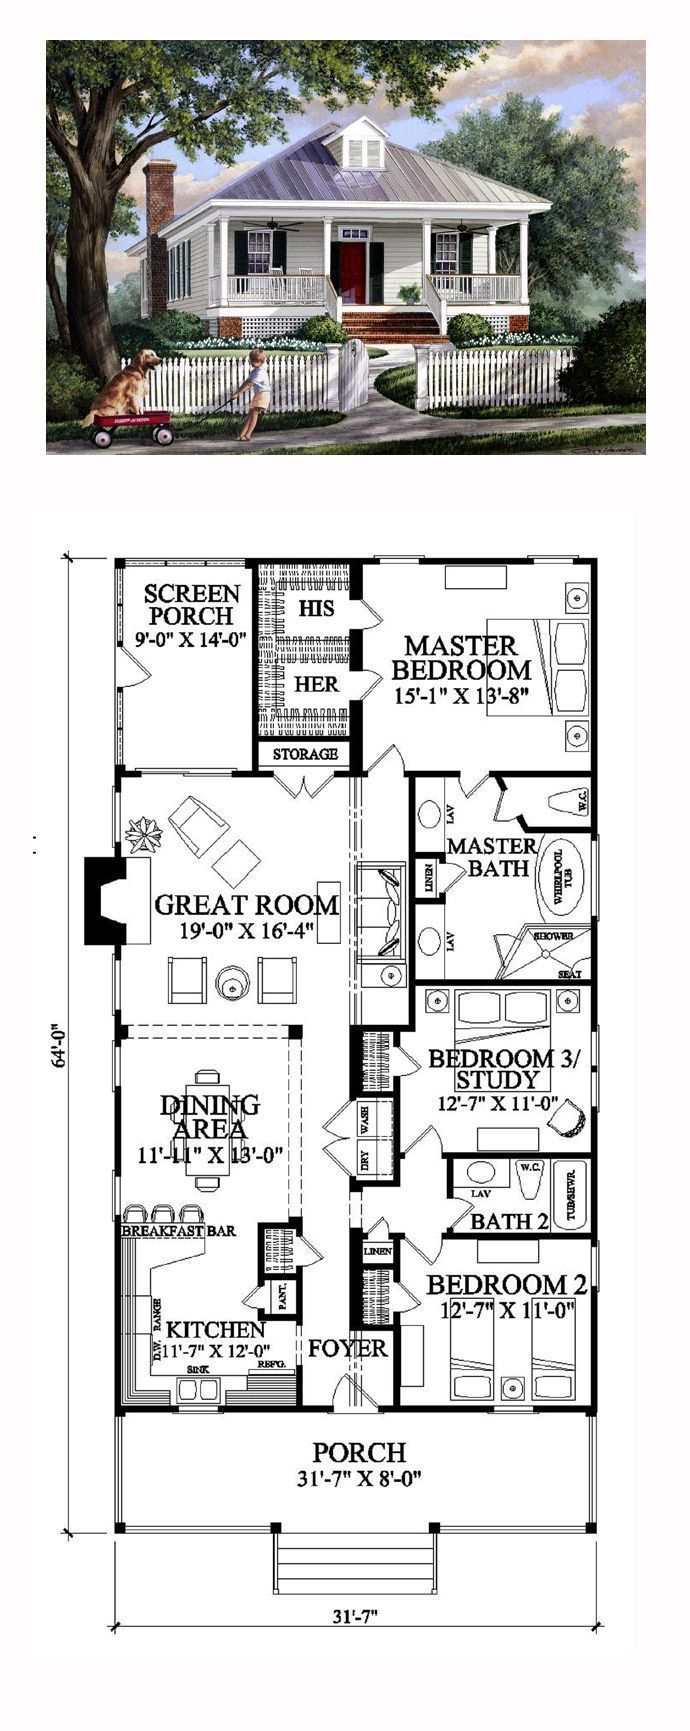 Colonial house plan 57065  Total living space 1643 sq Ft 3 bedrooms and 2 bathrooms